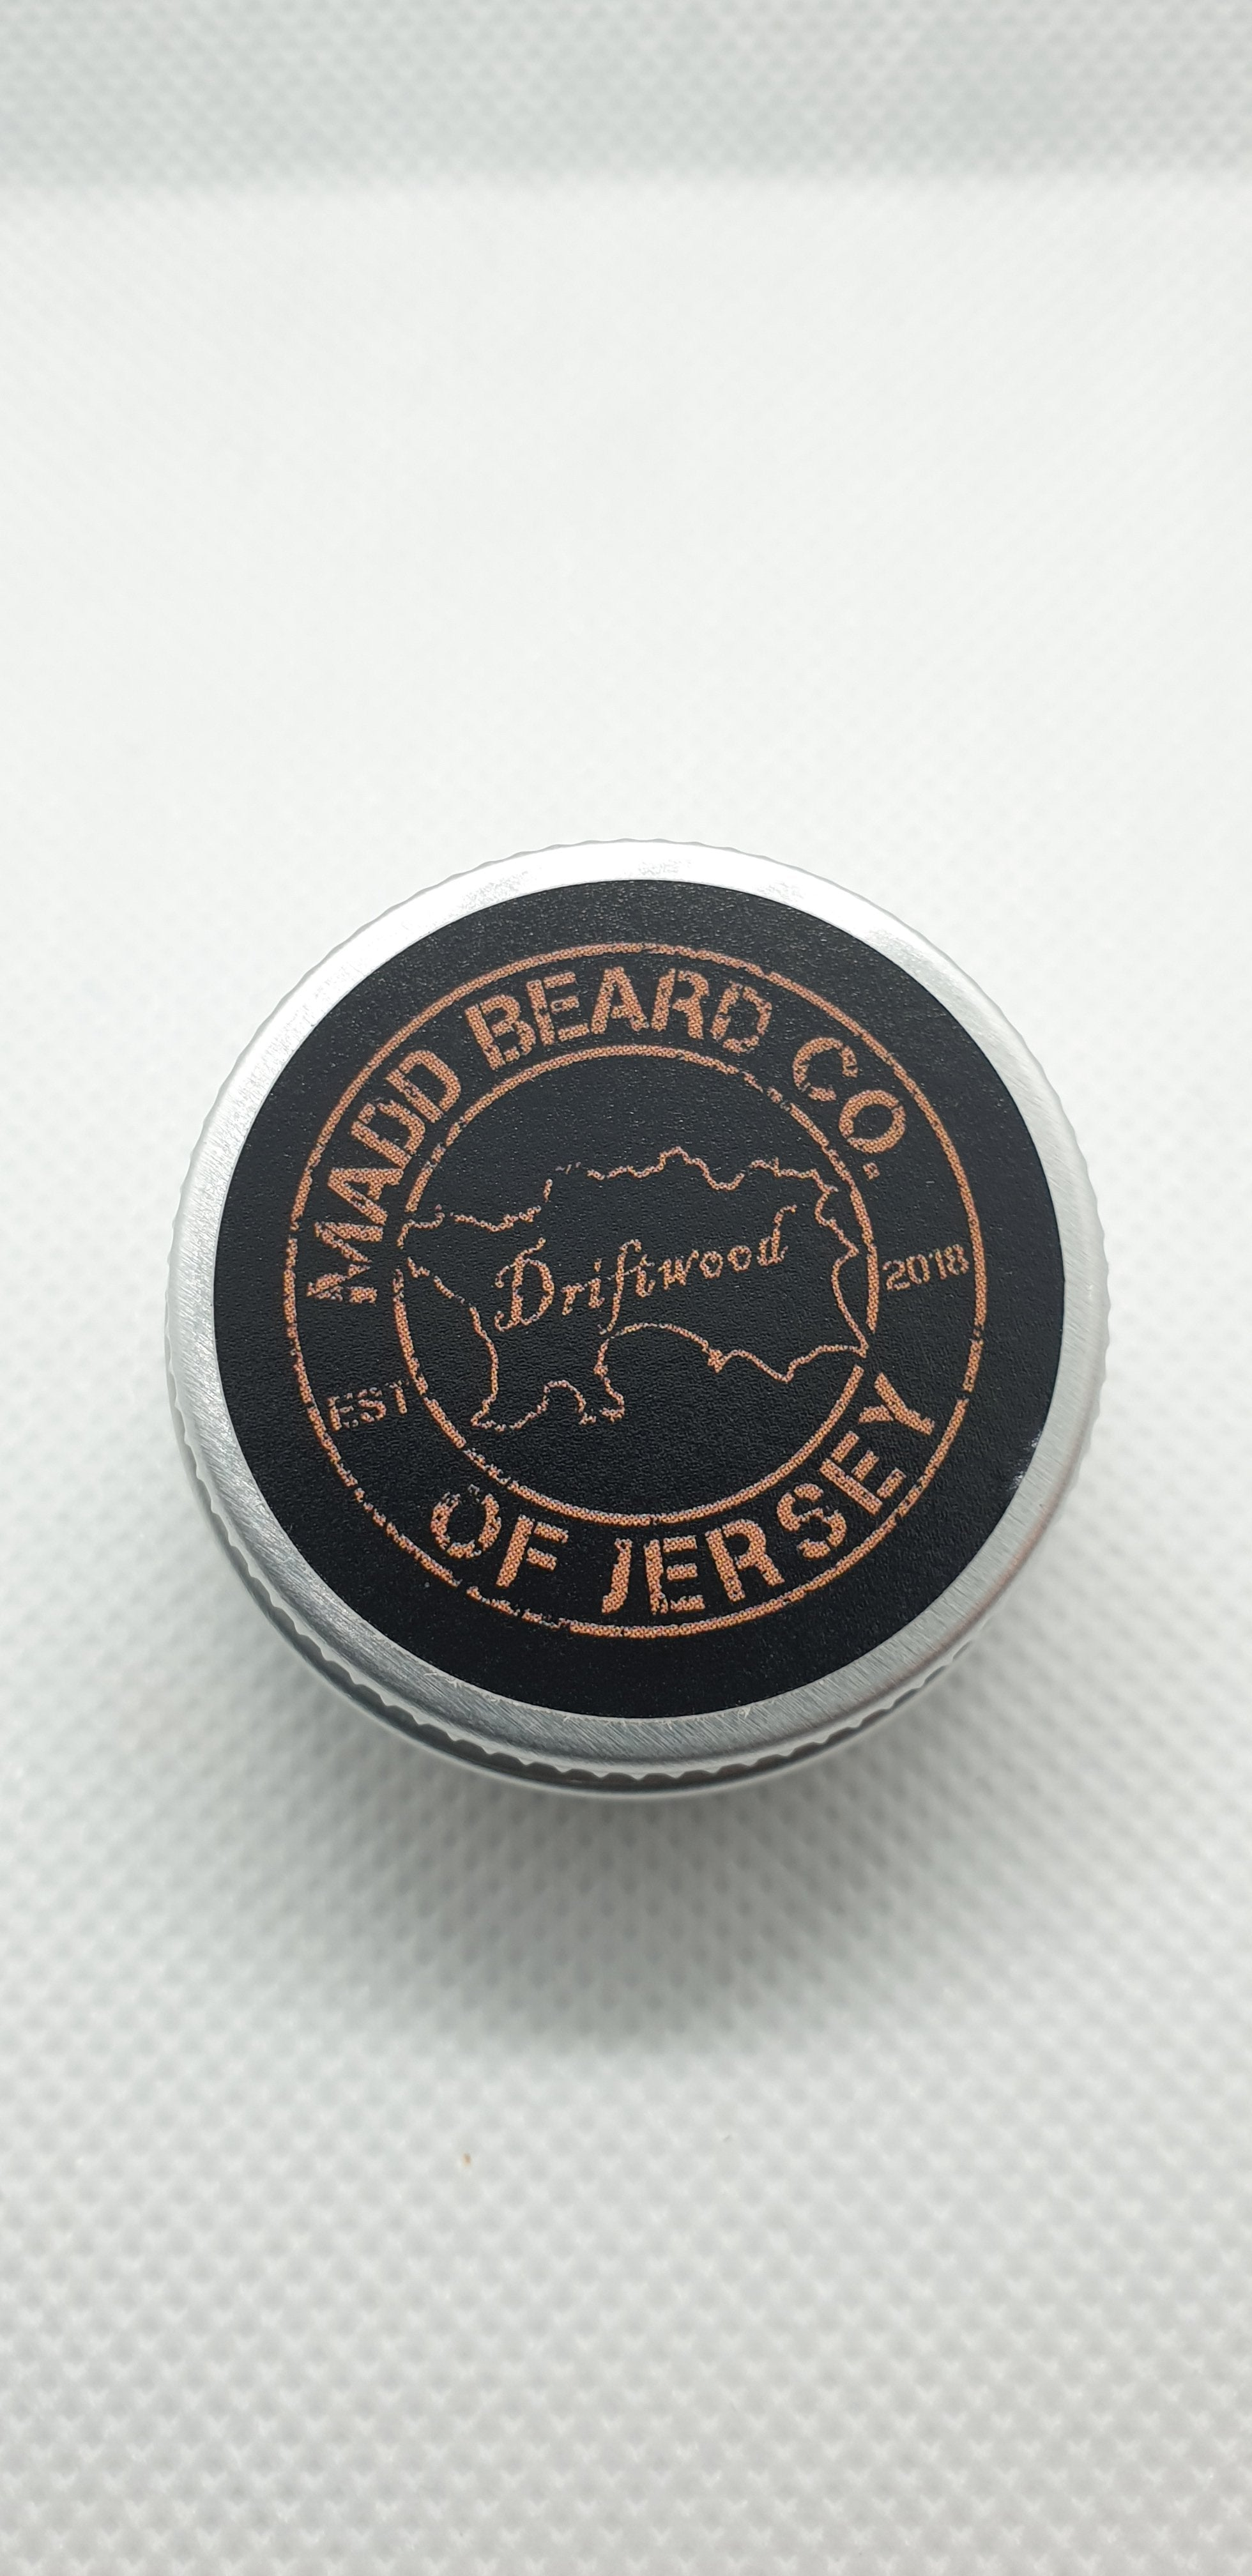 Driftwood Tash Wax 15ml